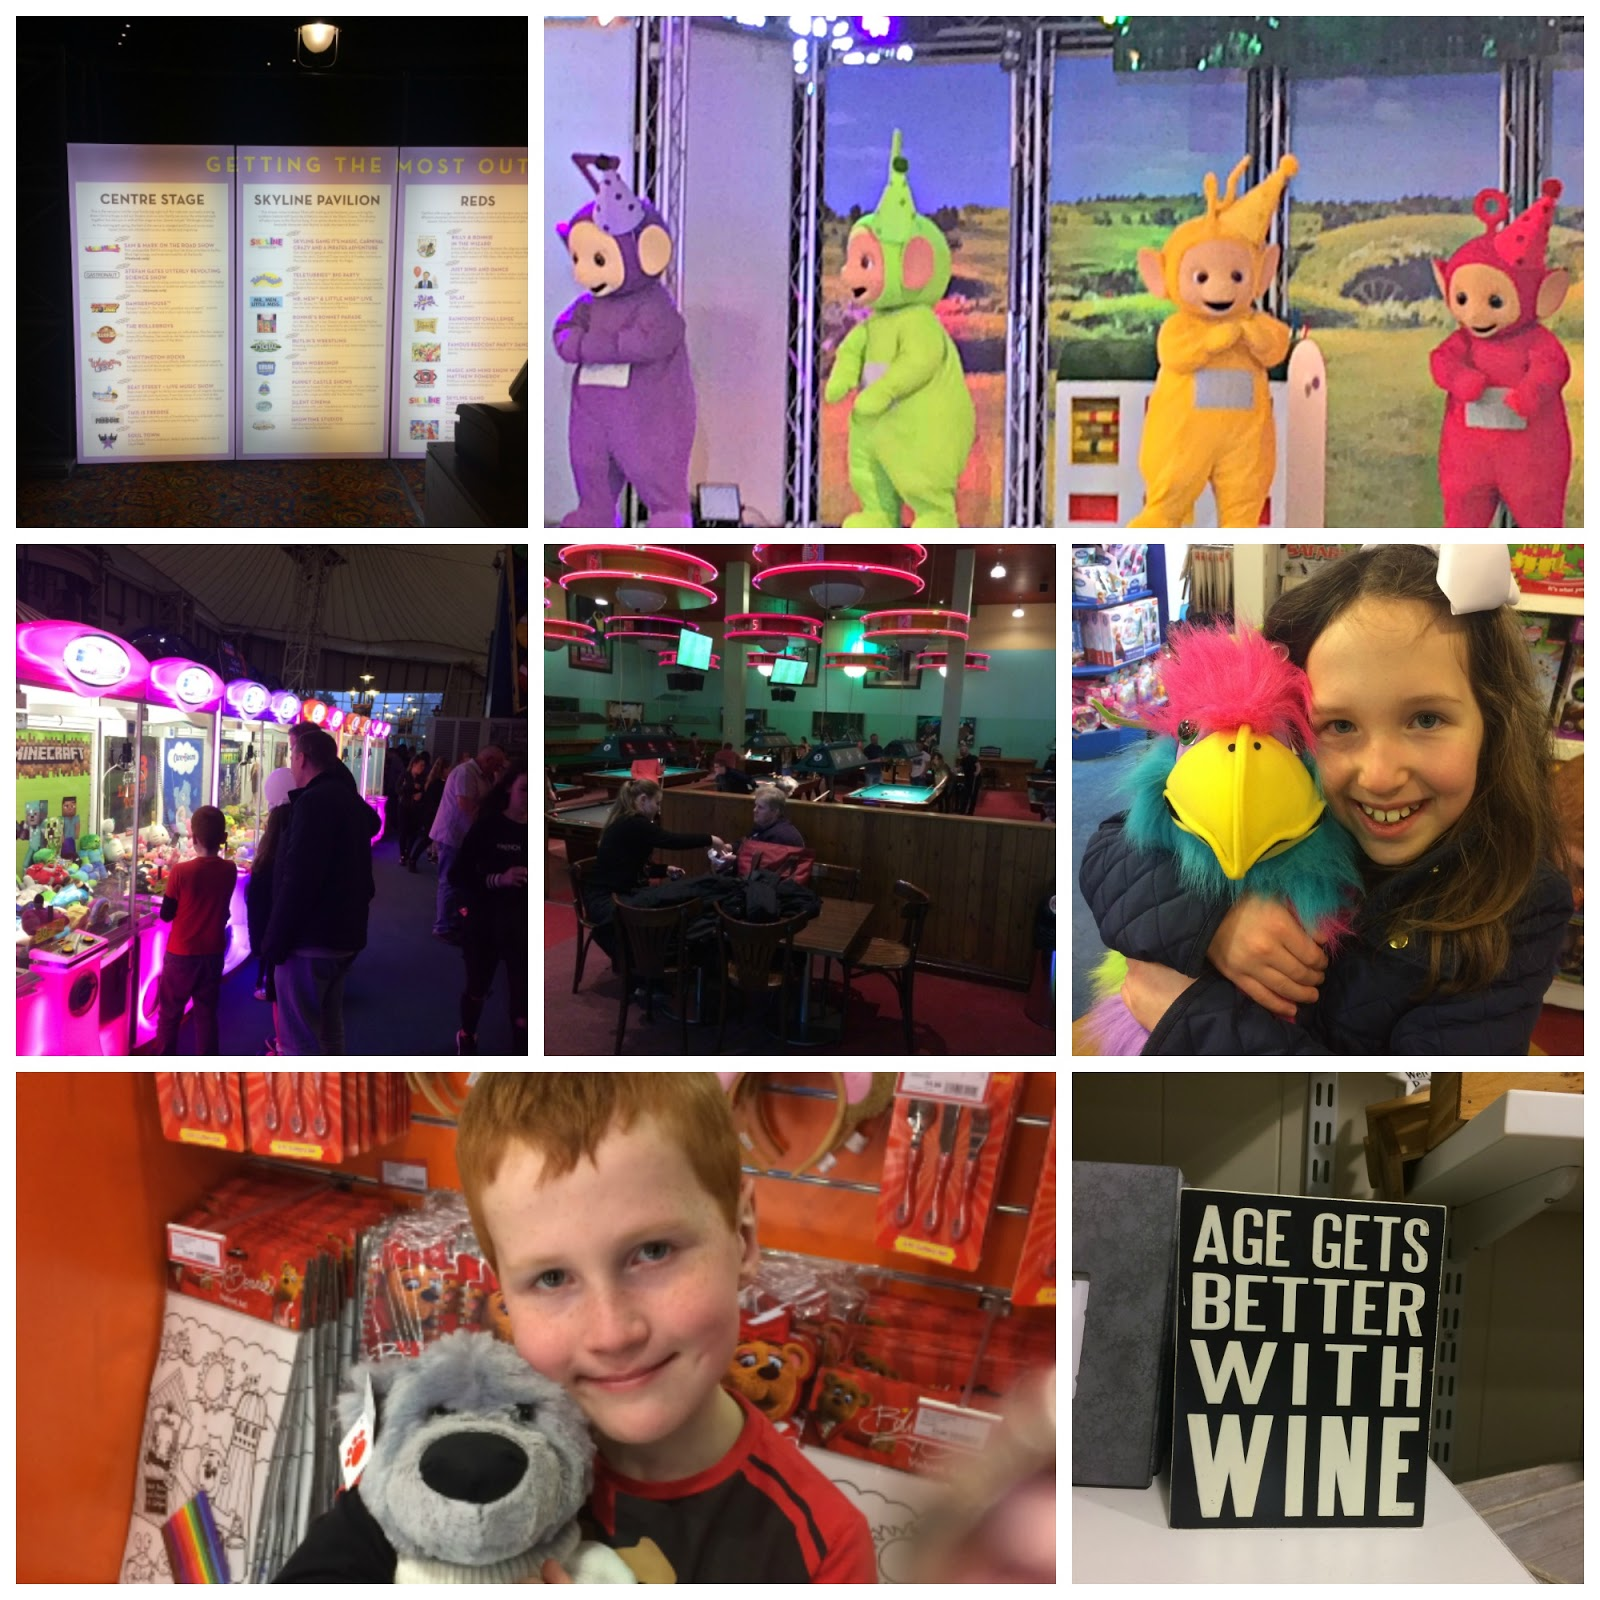 Collage of pictures in the Skyline Pavilion Butlins Minehead